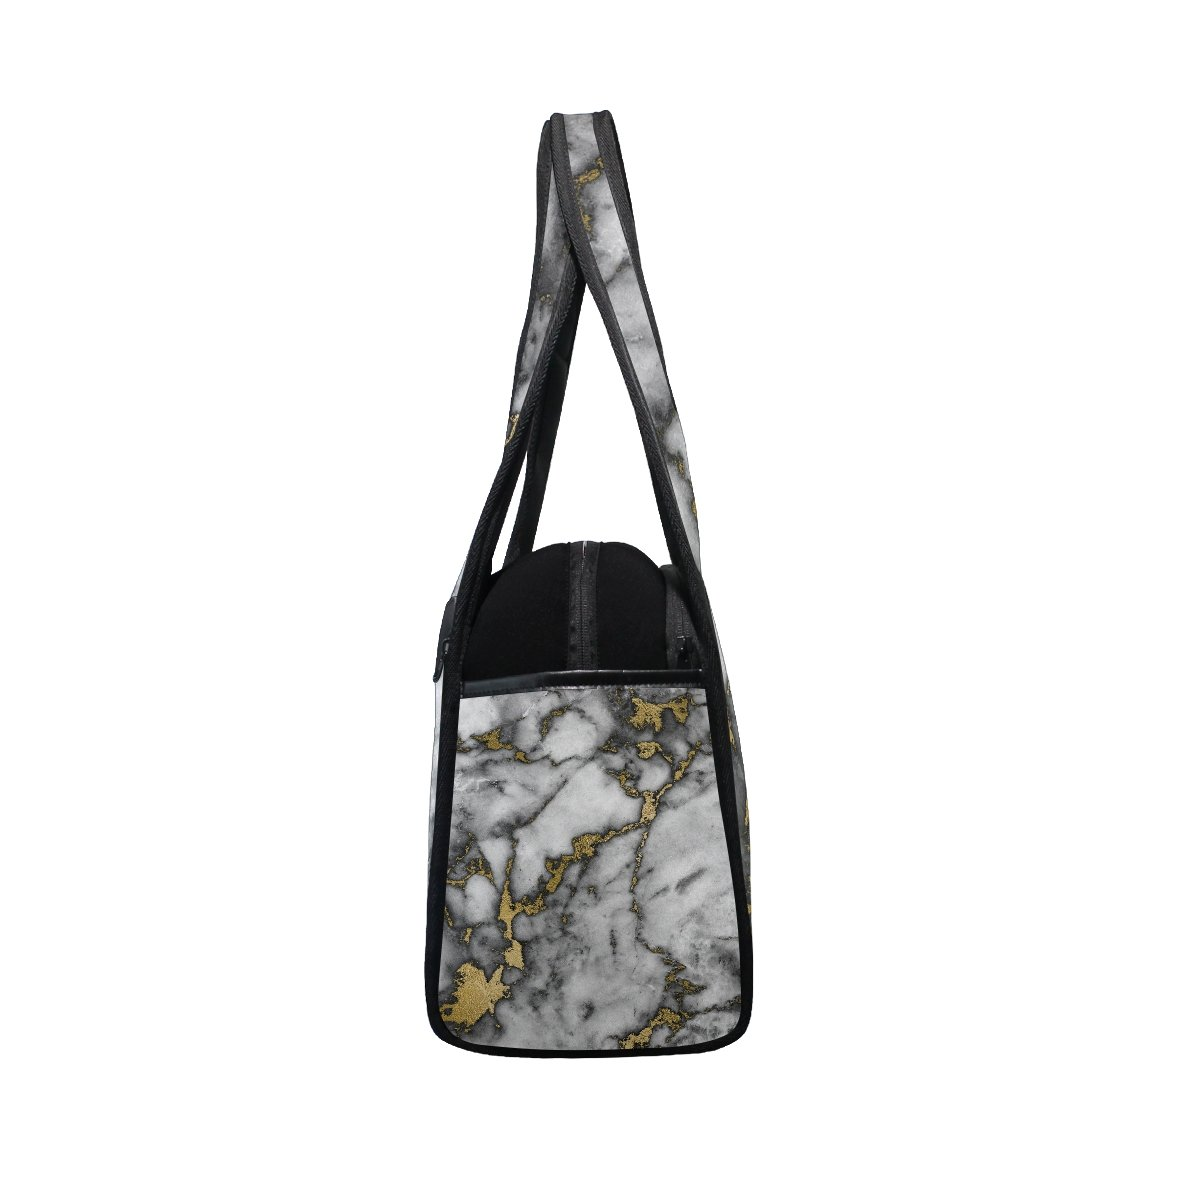 AHOMY Canvas Sports Gym Bag Marble Pattern Travel Shoulder Bag